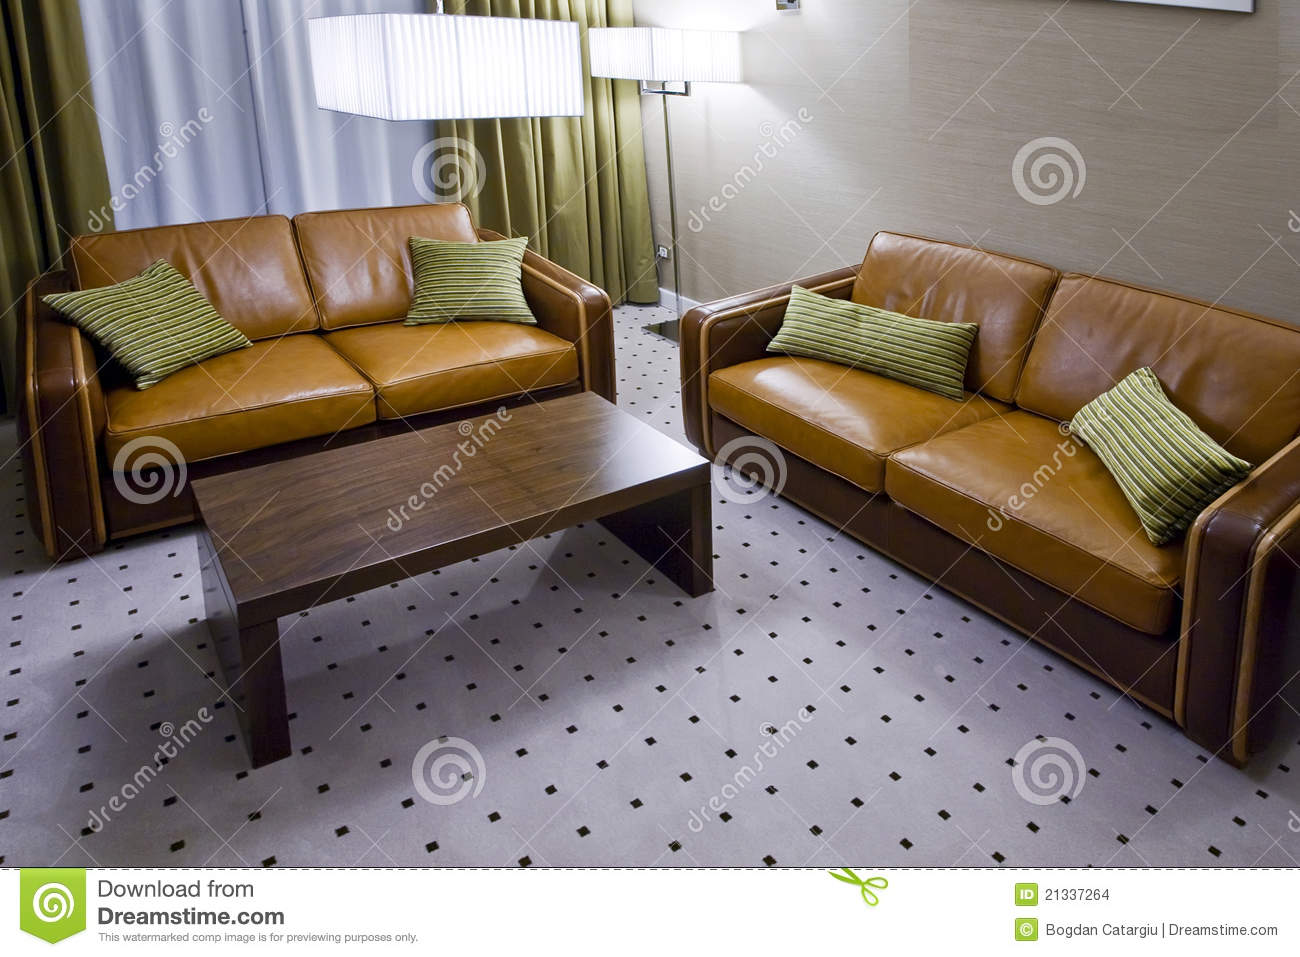 Two Brown Leather Sofas In Living Room Stock Photo Image Of Indoors Style 21337264